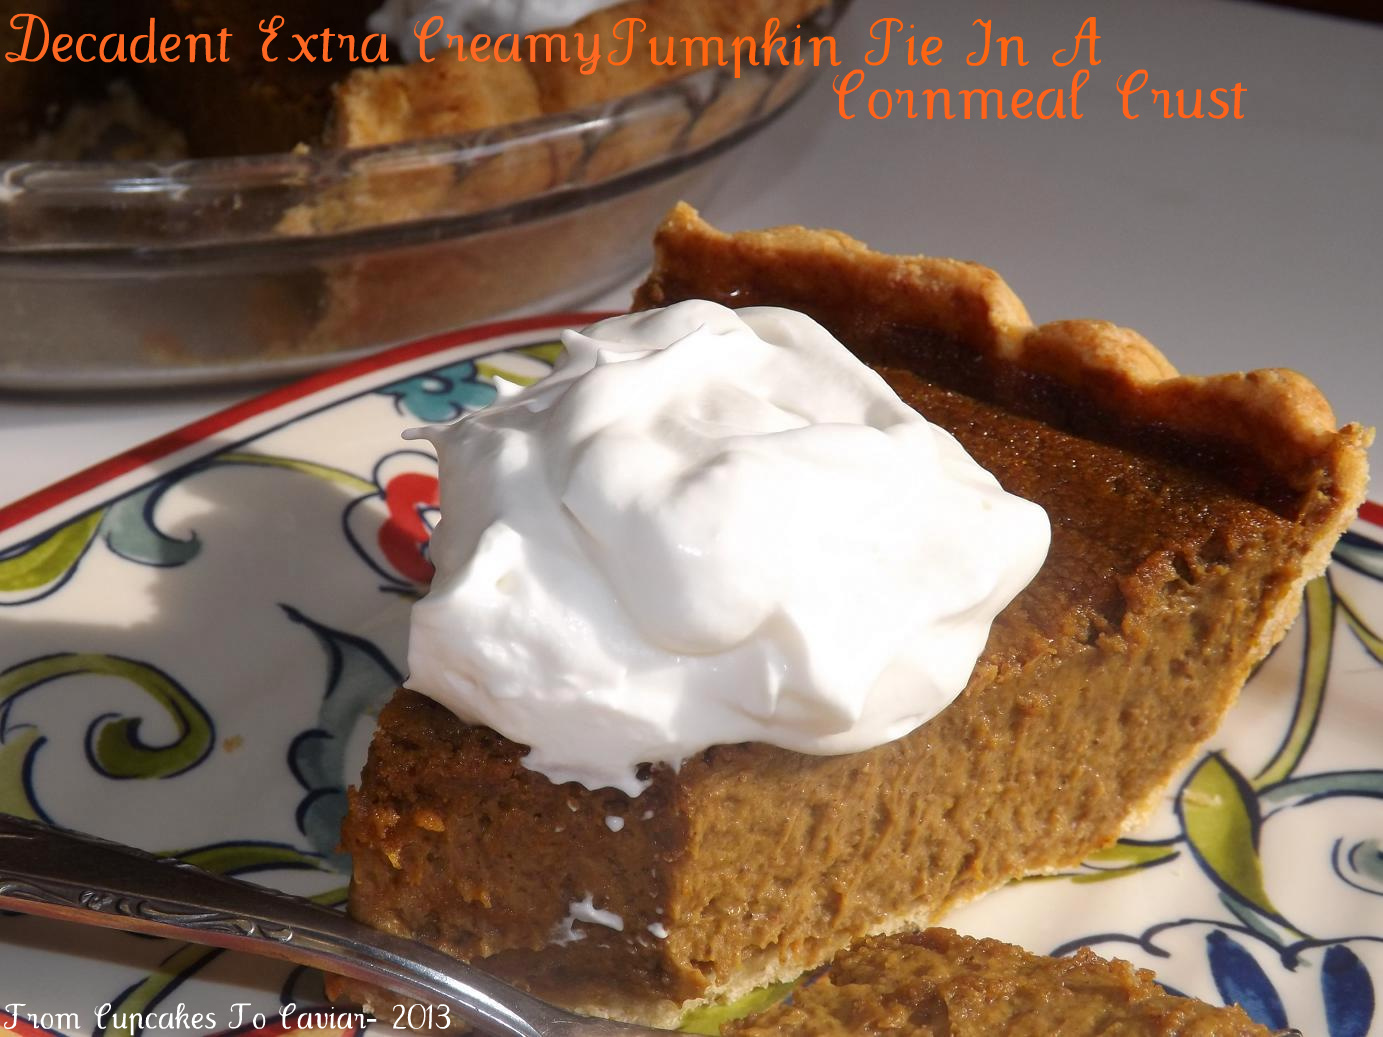 Decadent Extra Creamy Pumpkin Pie In A Cornmeal Crust